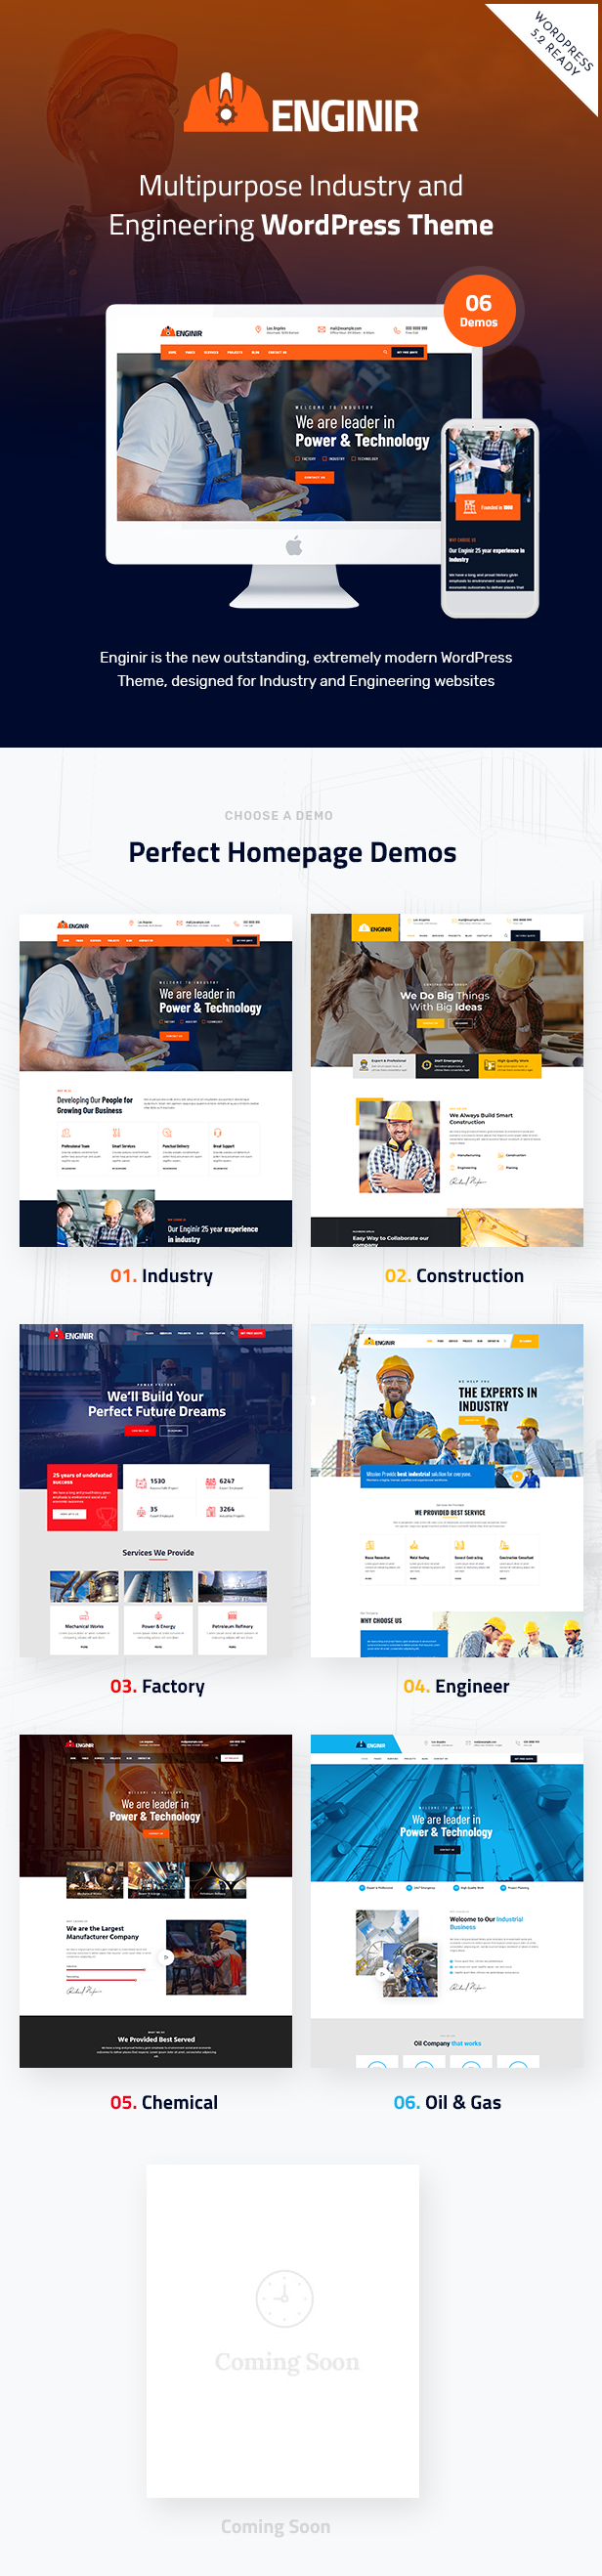 Enginir WordPress Theme